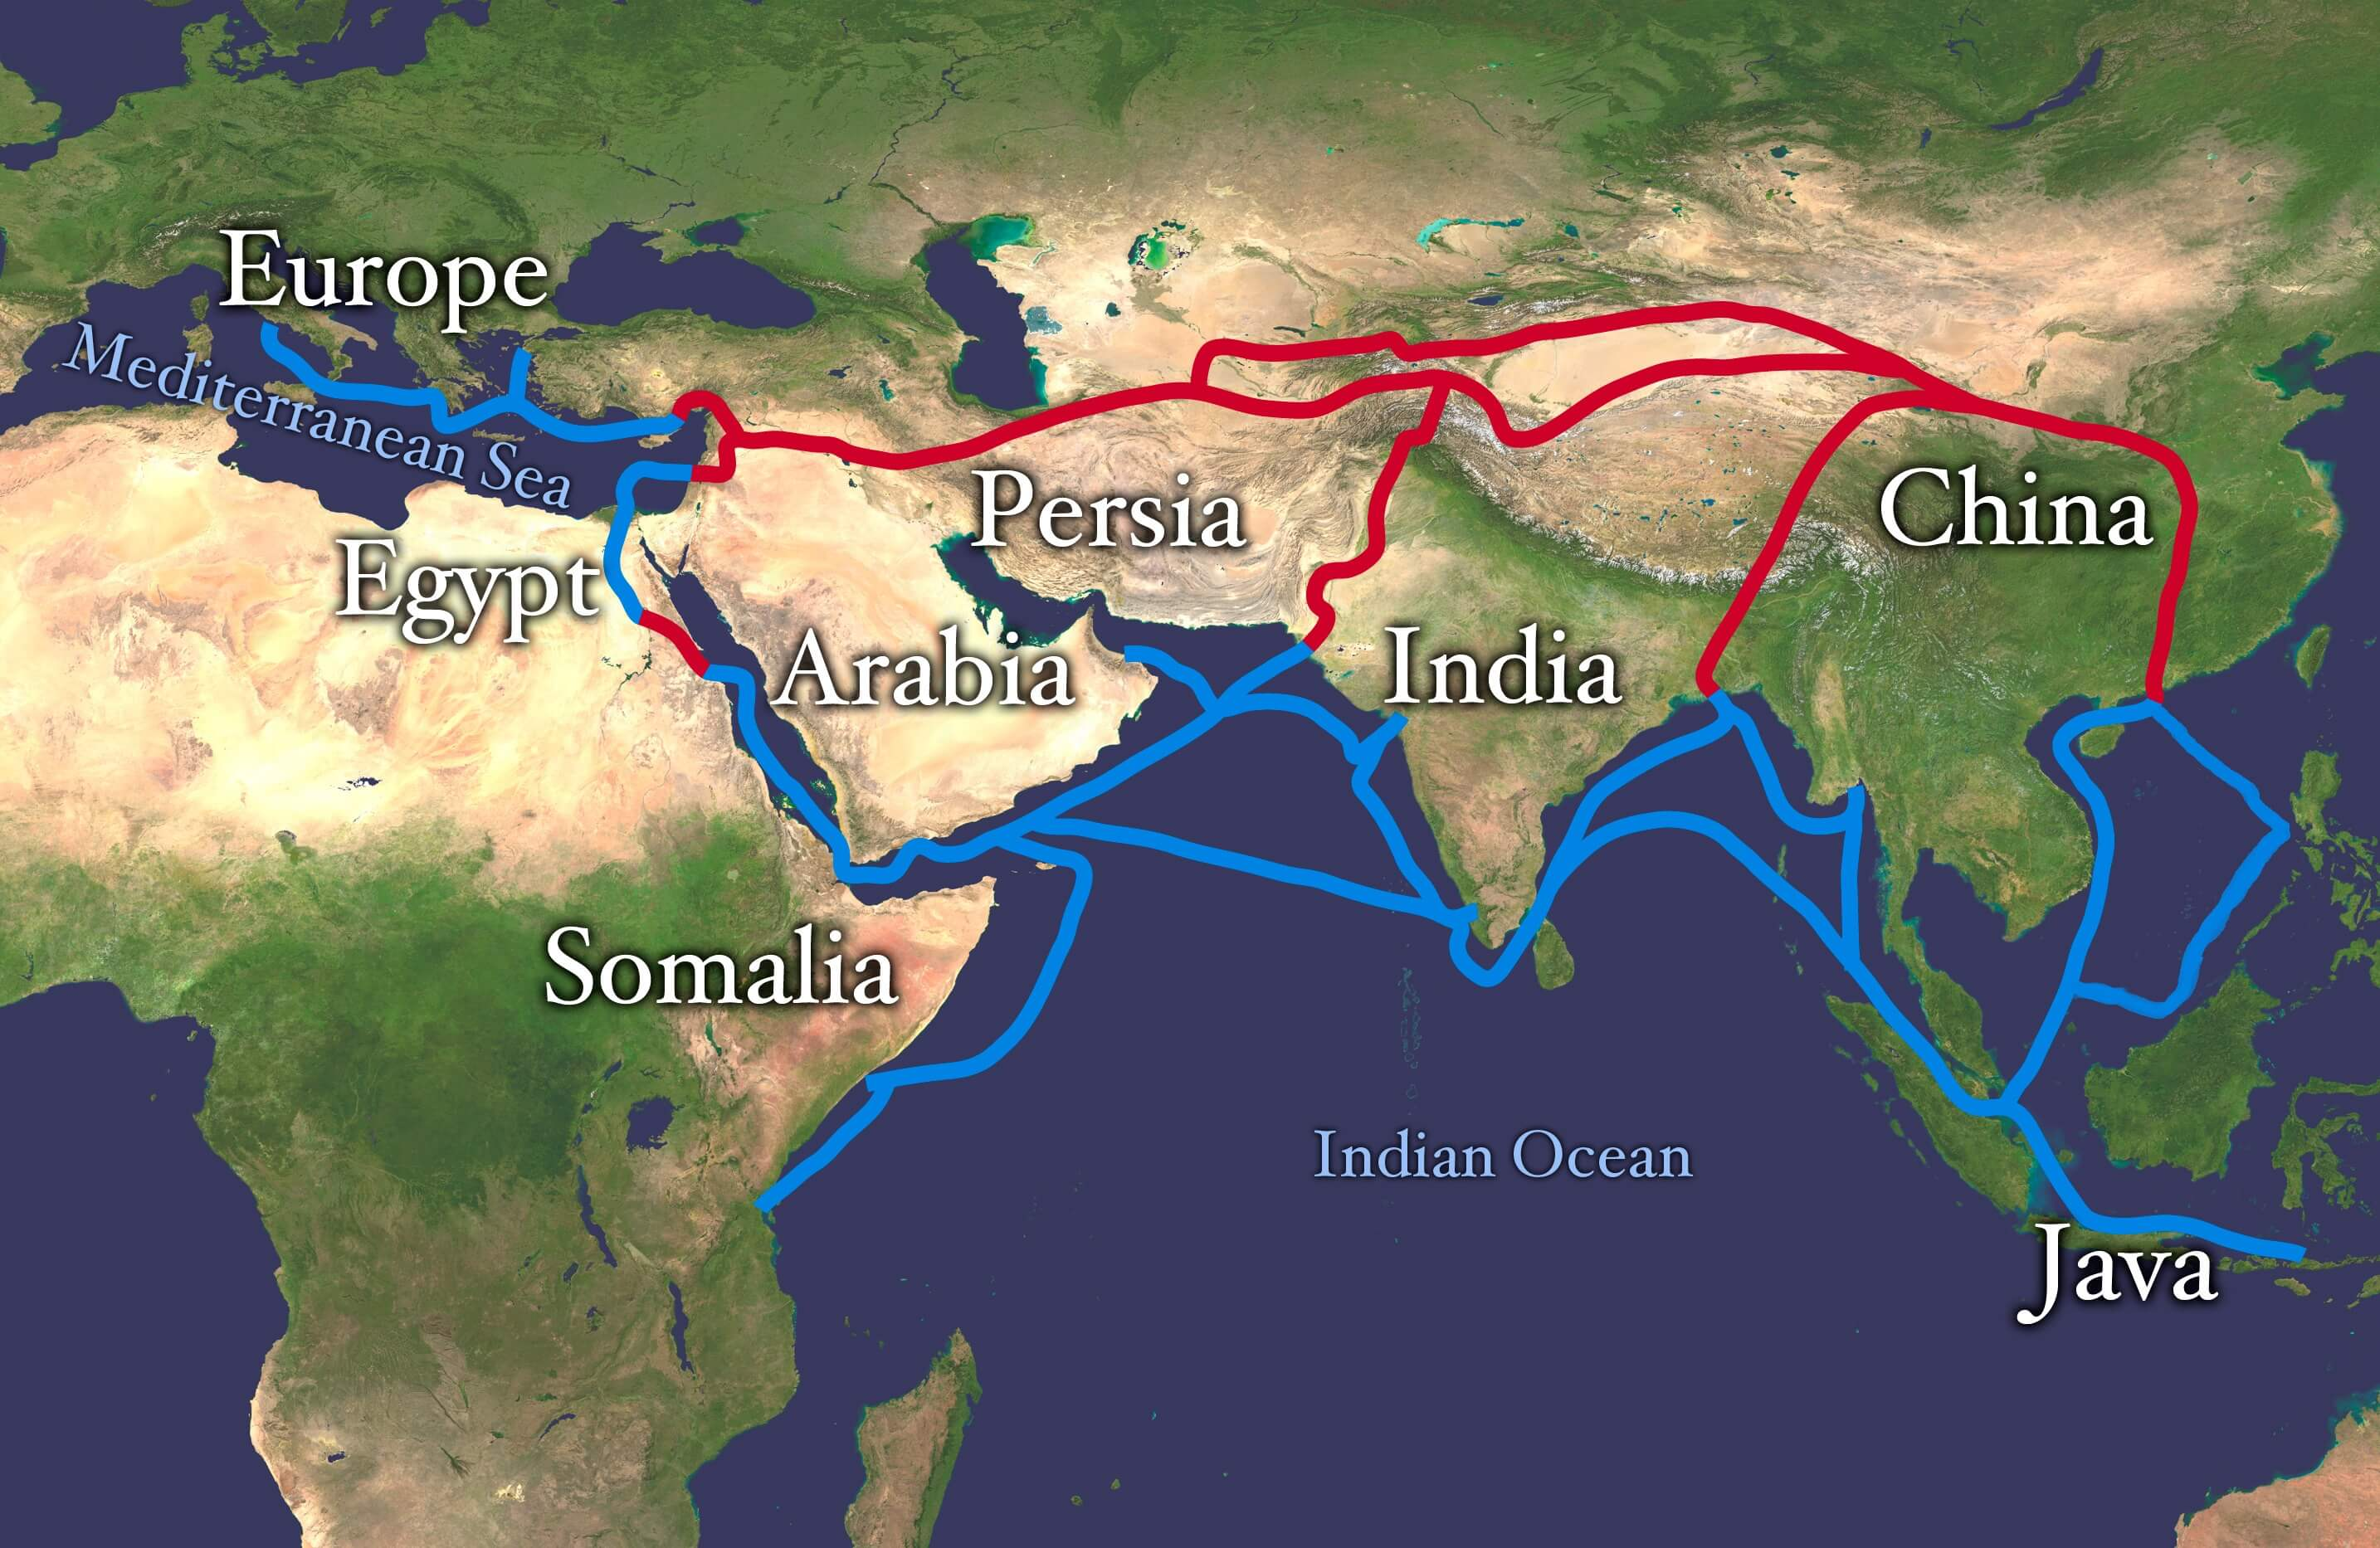 Map of the new silk road, OBOR project